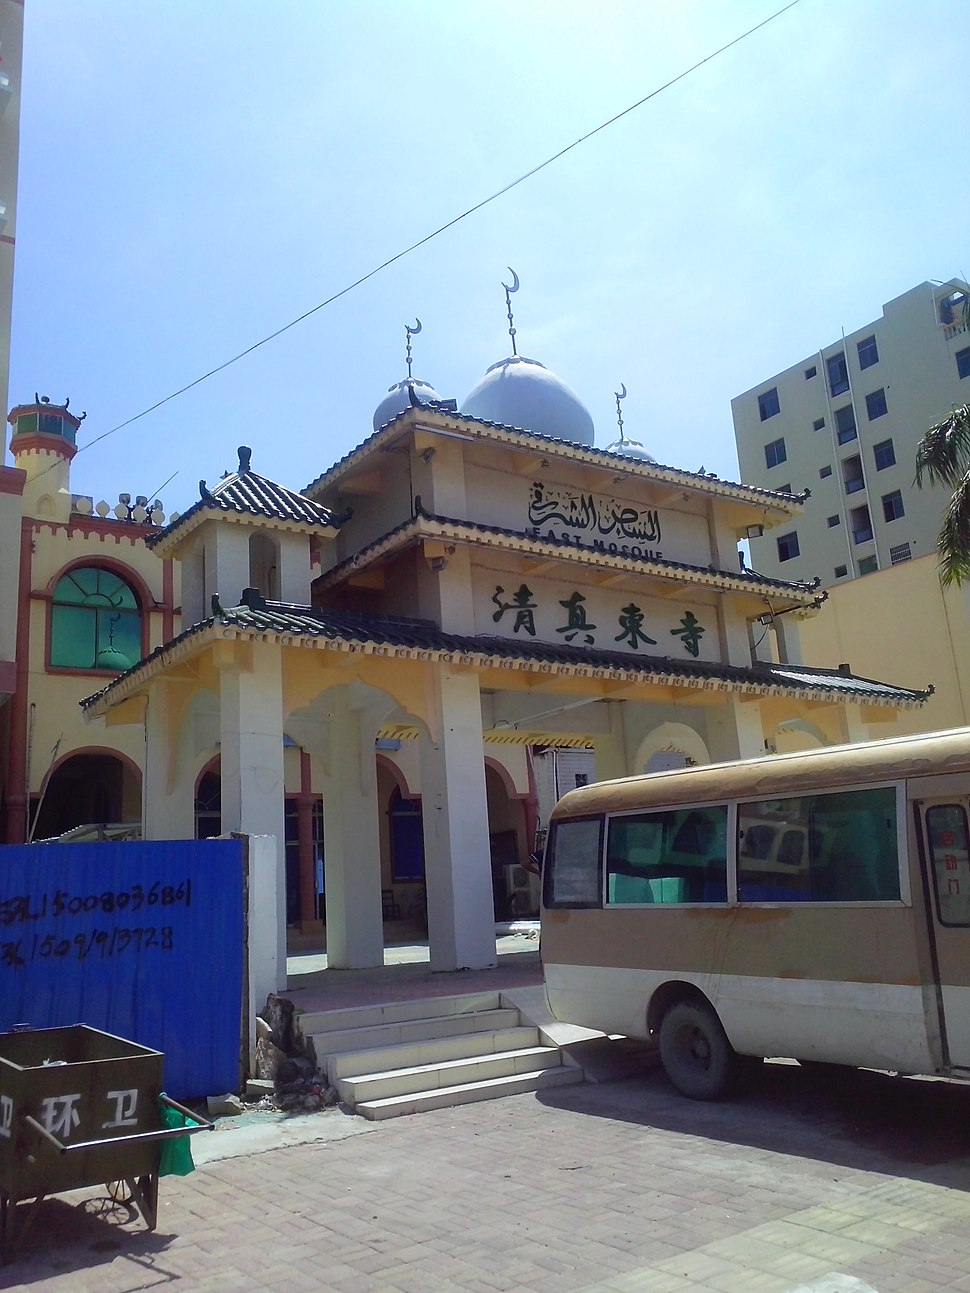 East Mosque in Sanya, China